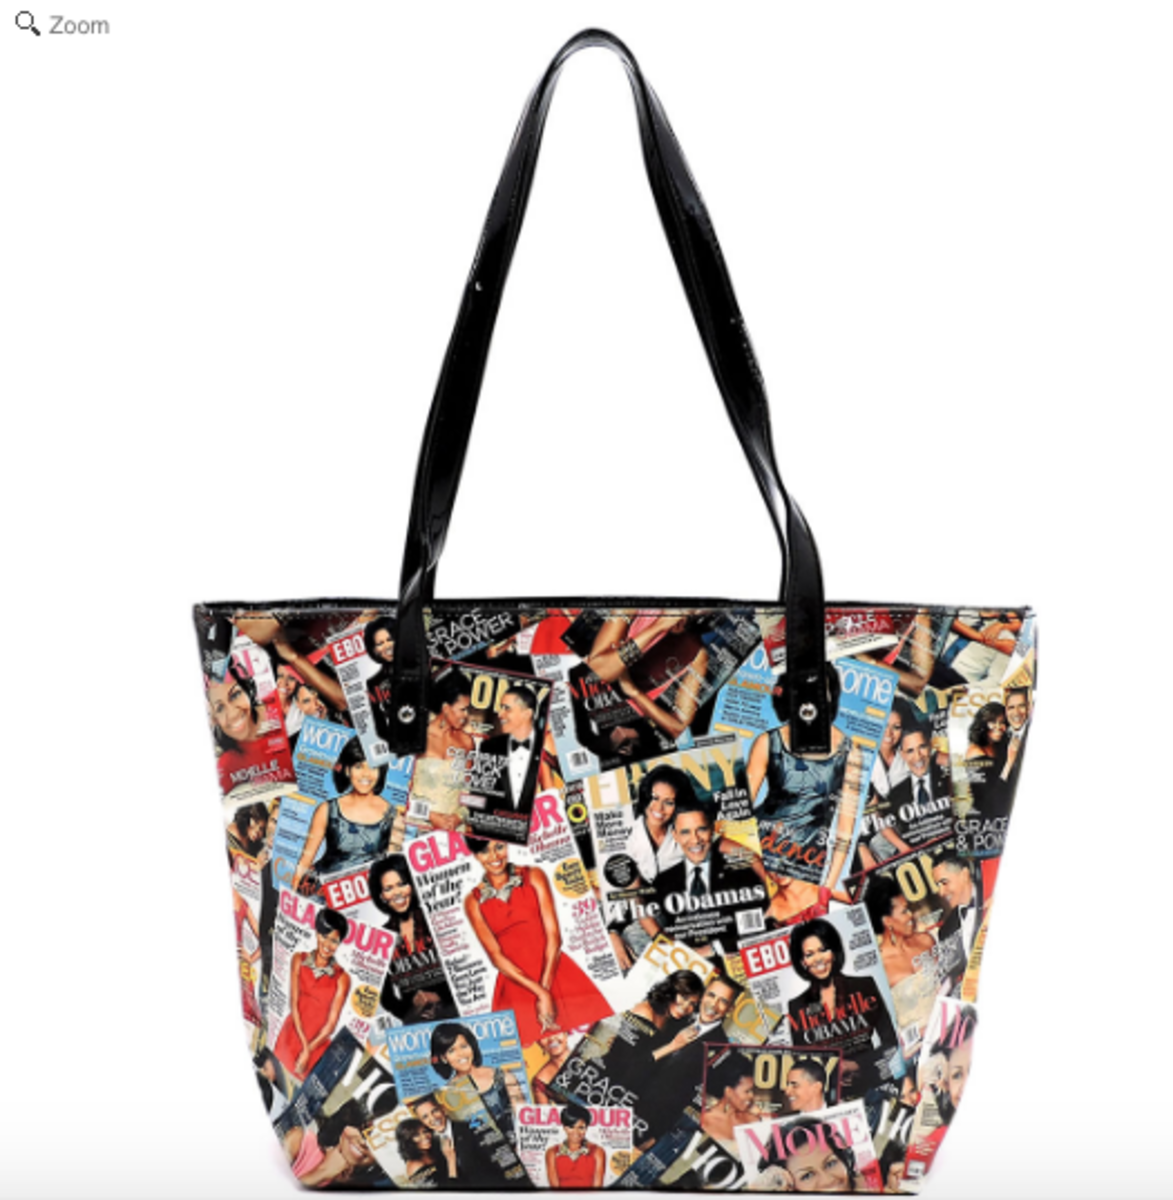 These Michelle Obama tote bags come in packs of two. They are great for shopping, bringing kids stuff around, or taking anywhere you want to be reminded of a great lady.